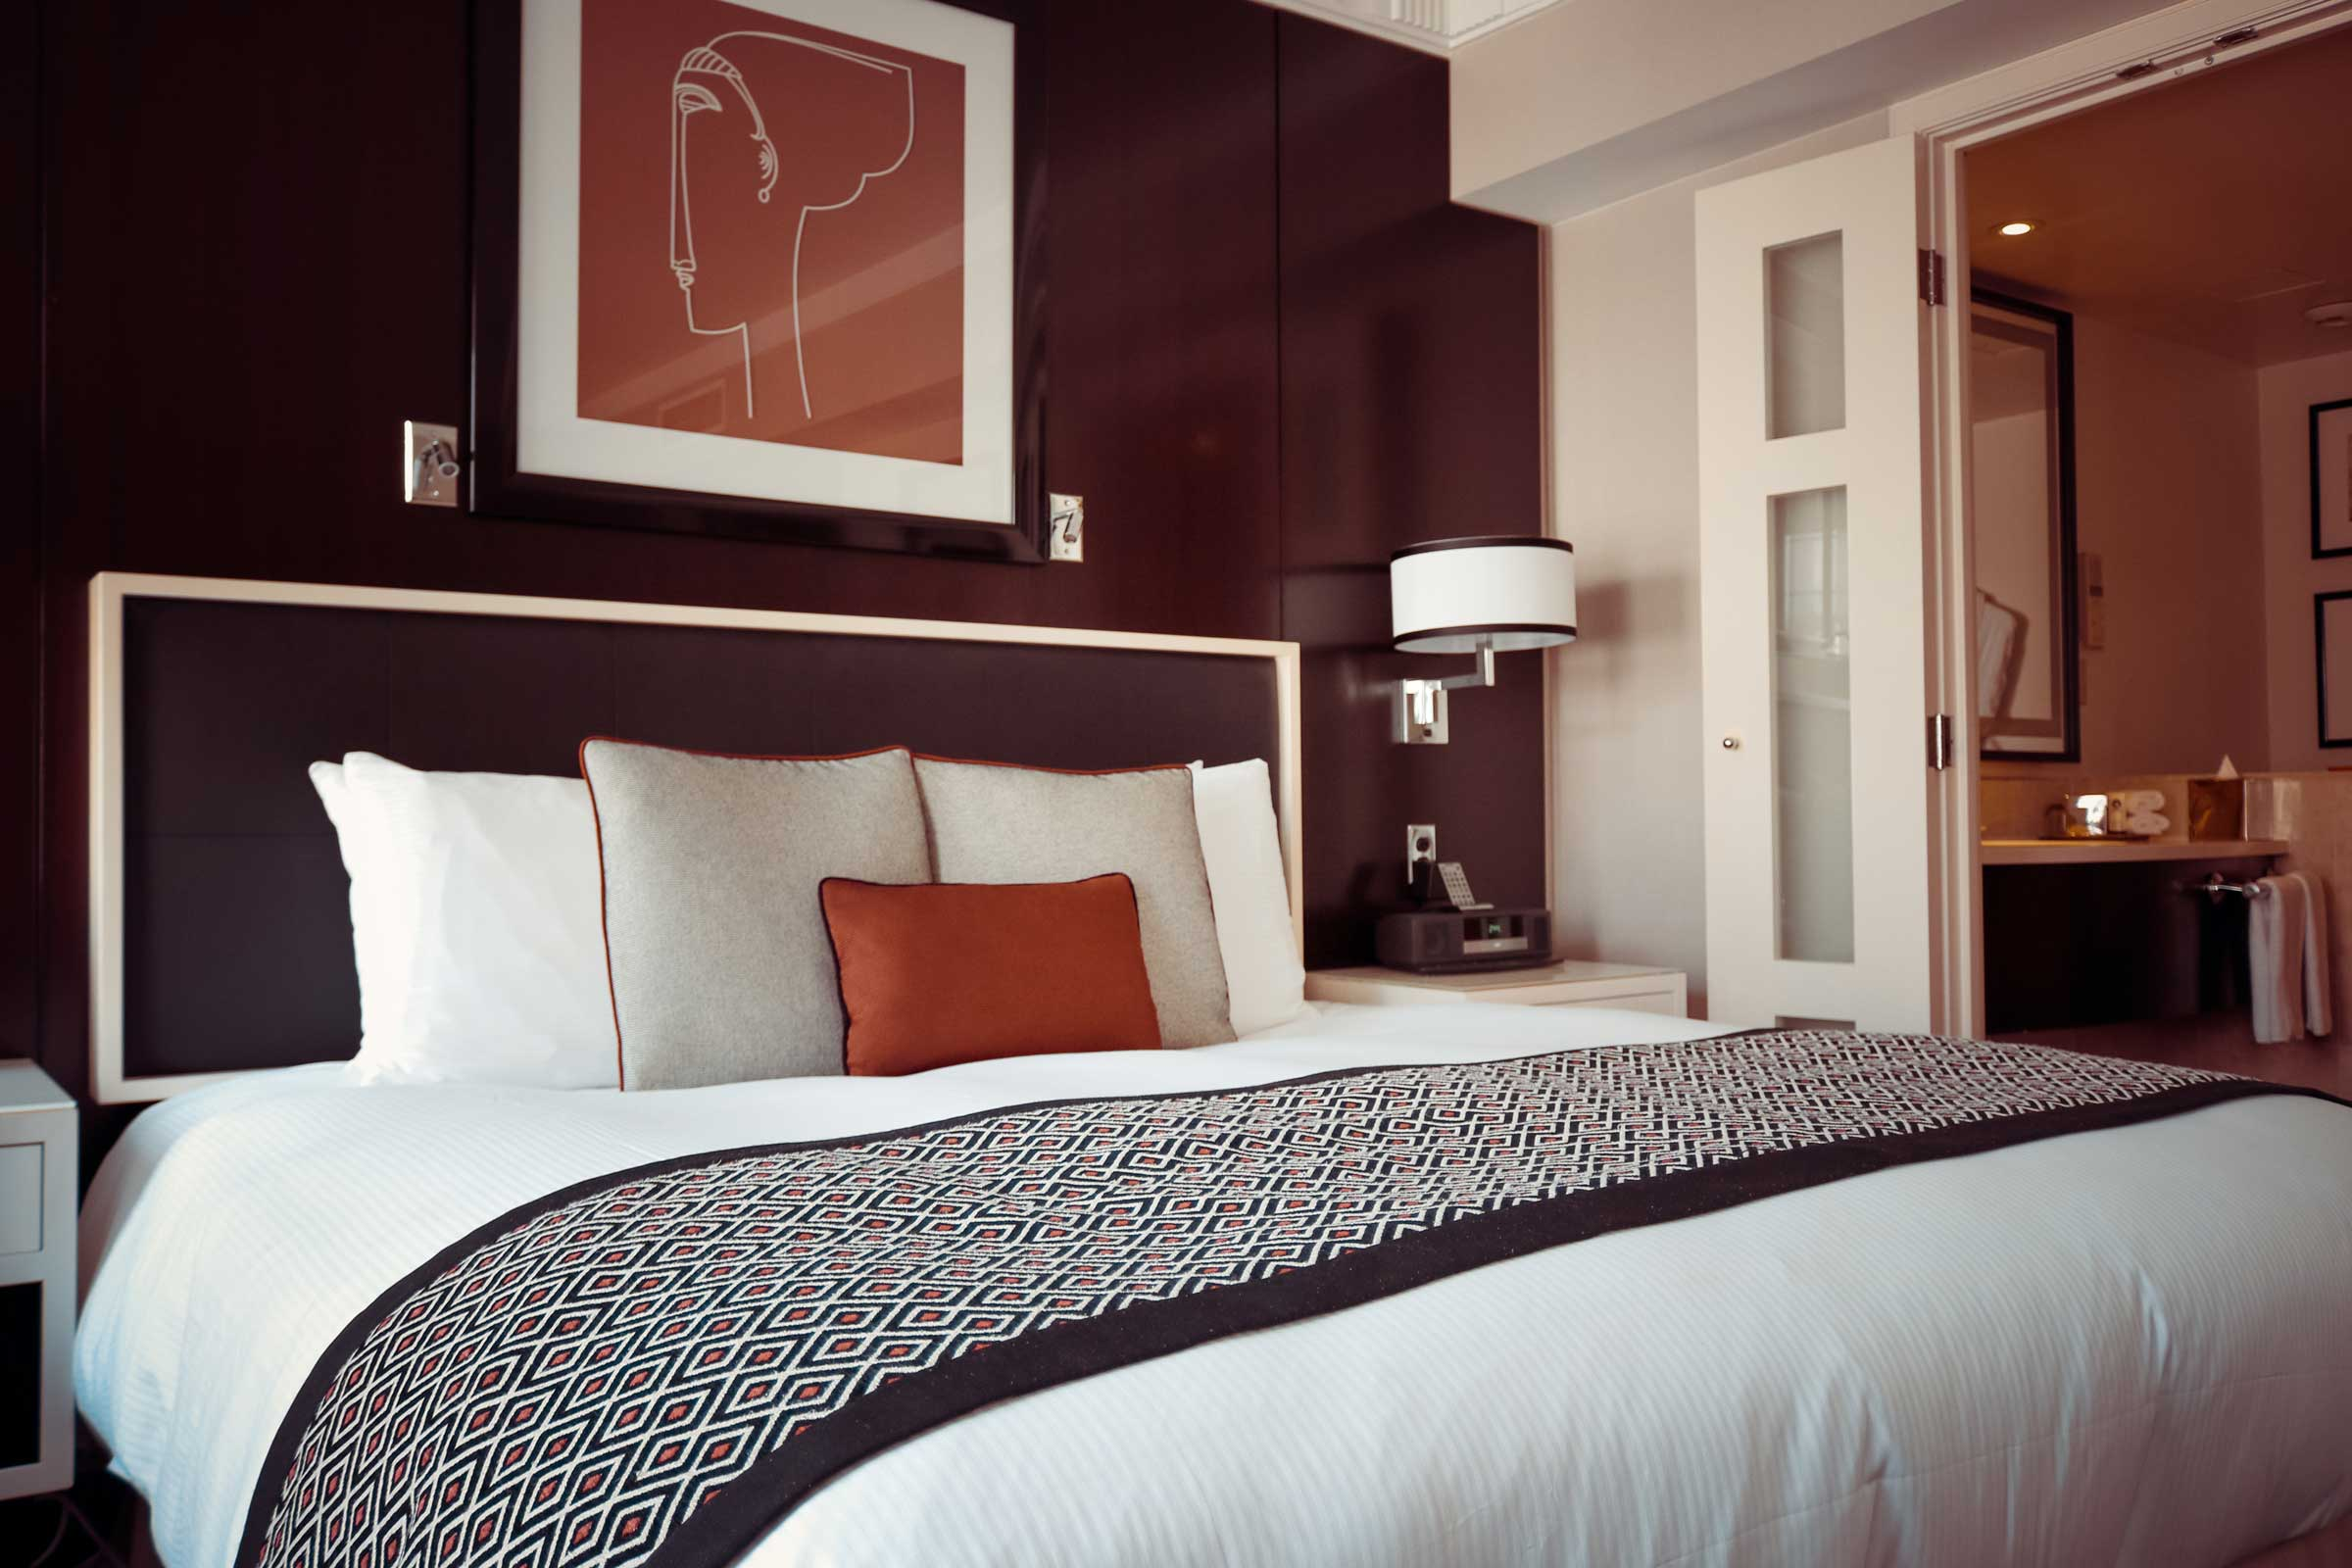 NEW! Telephones for Hotel Rooms